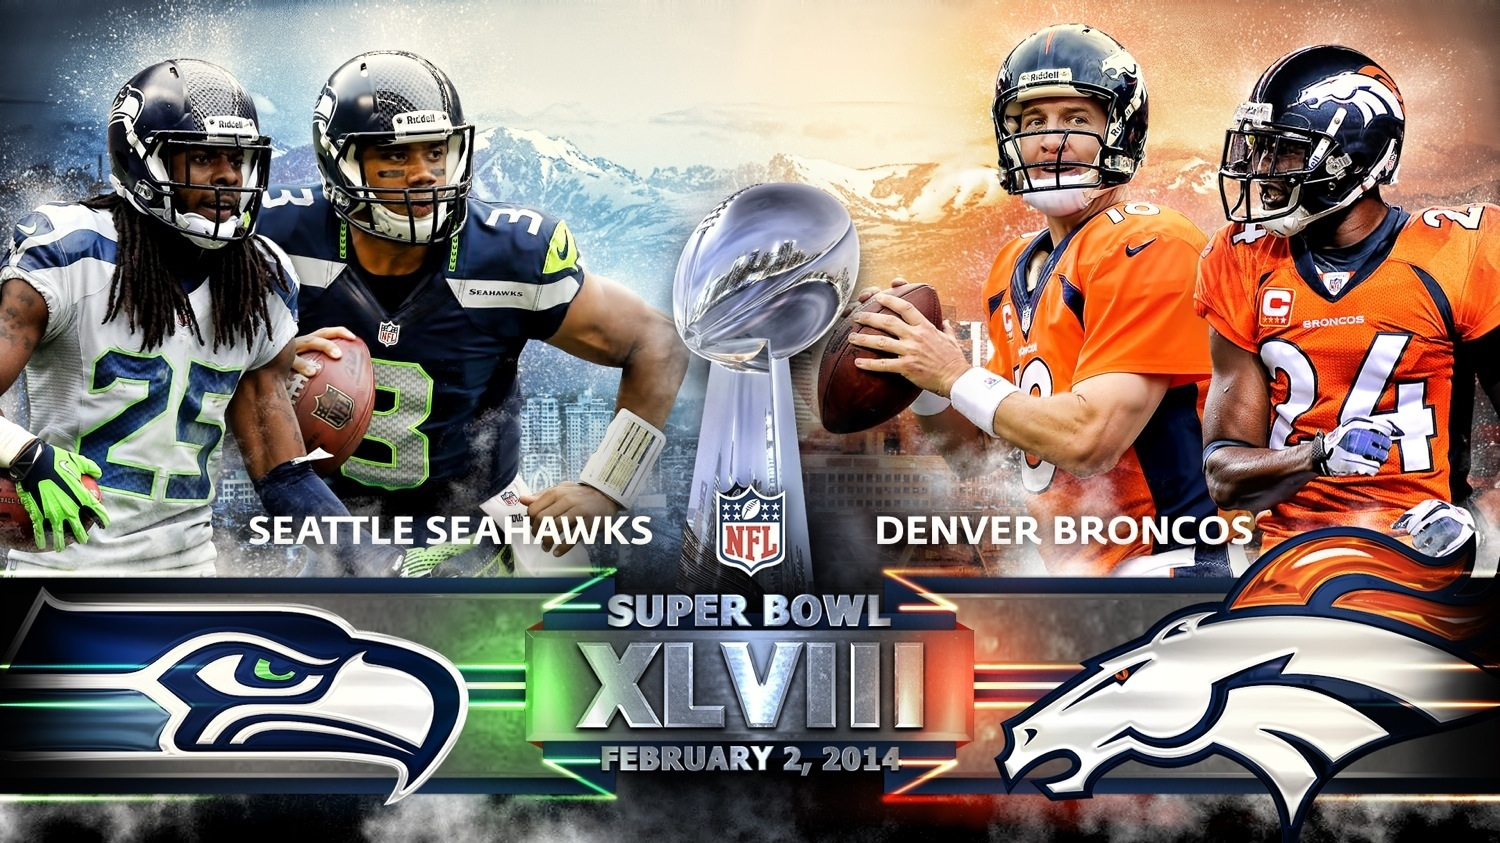 Who Won The Super Bowl 2014